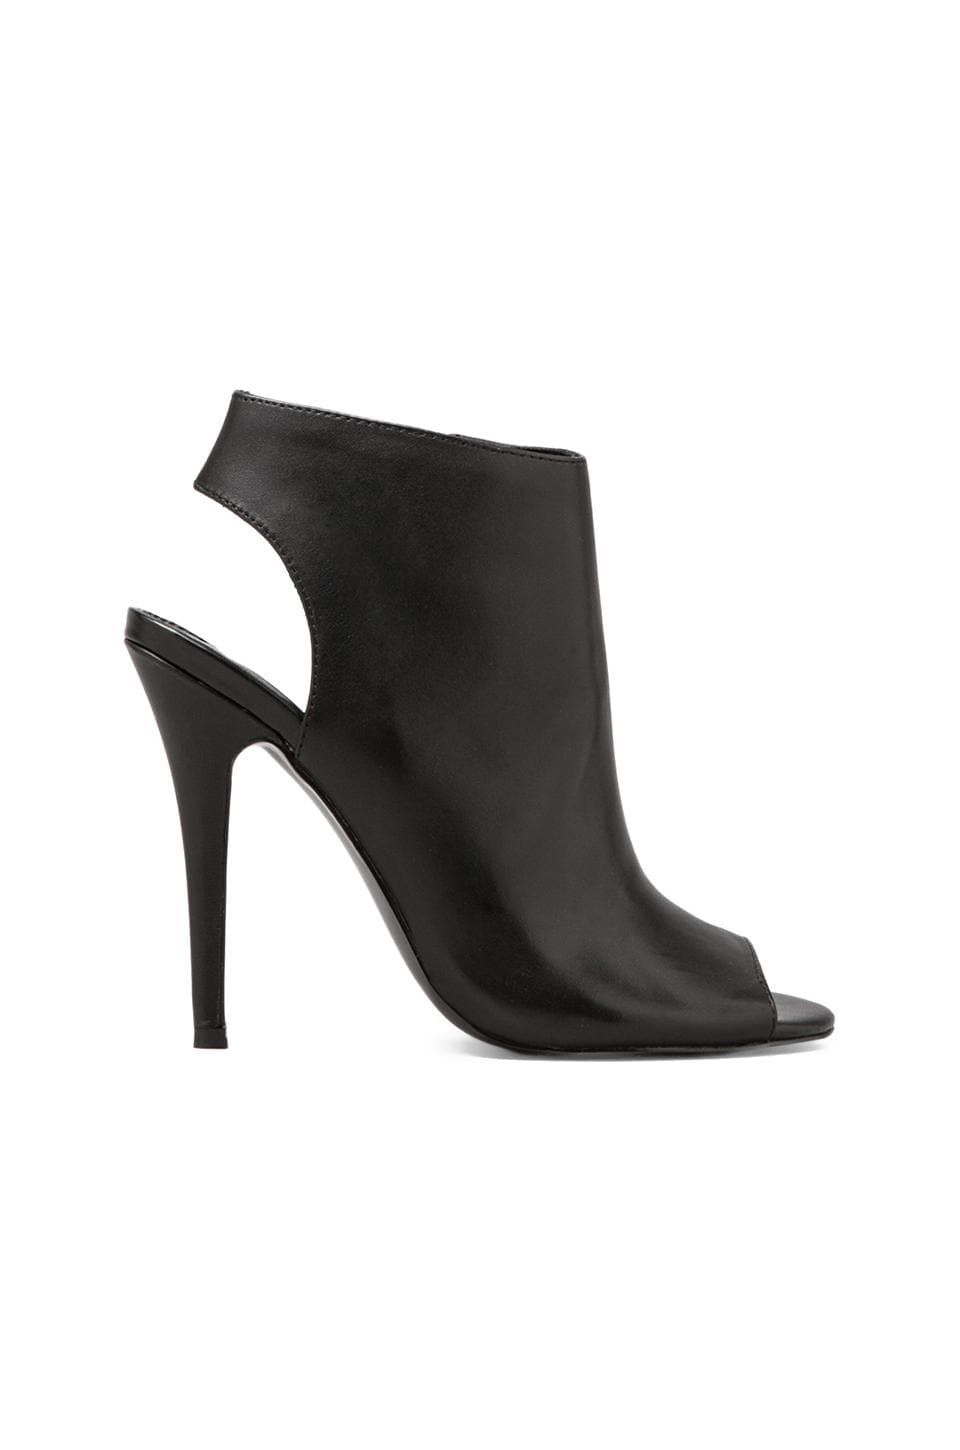 Steve Madden Roknrol Heel Bootie in Black Leather